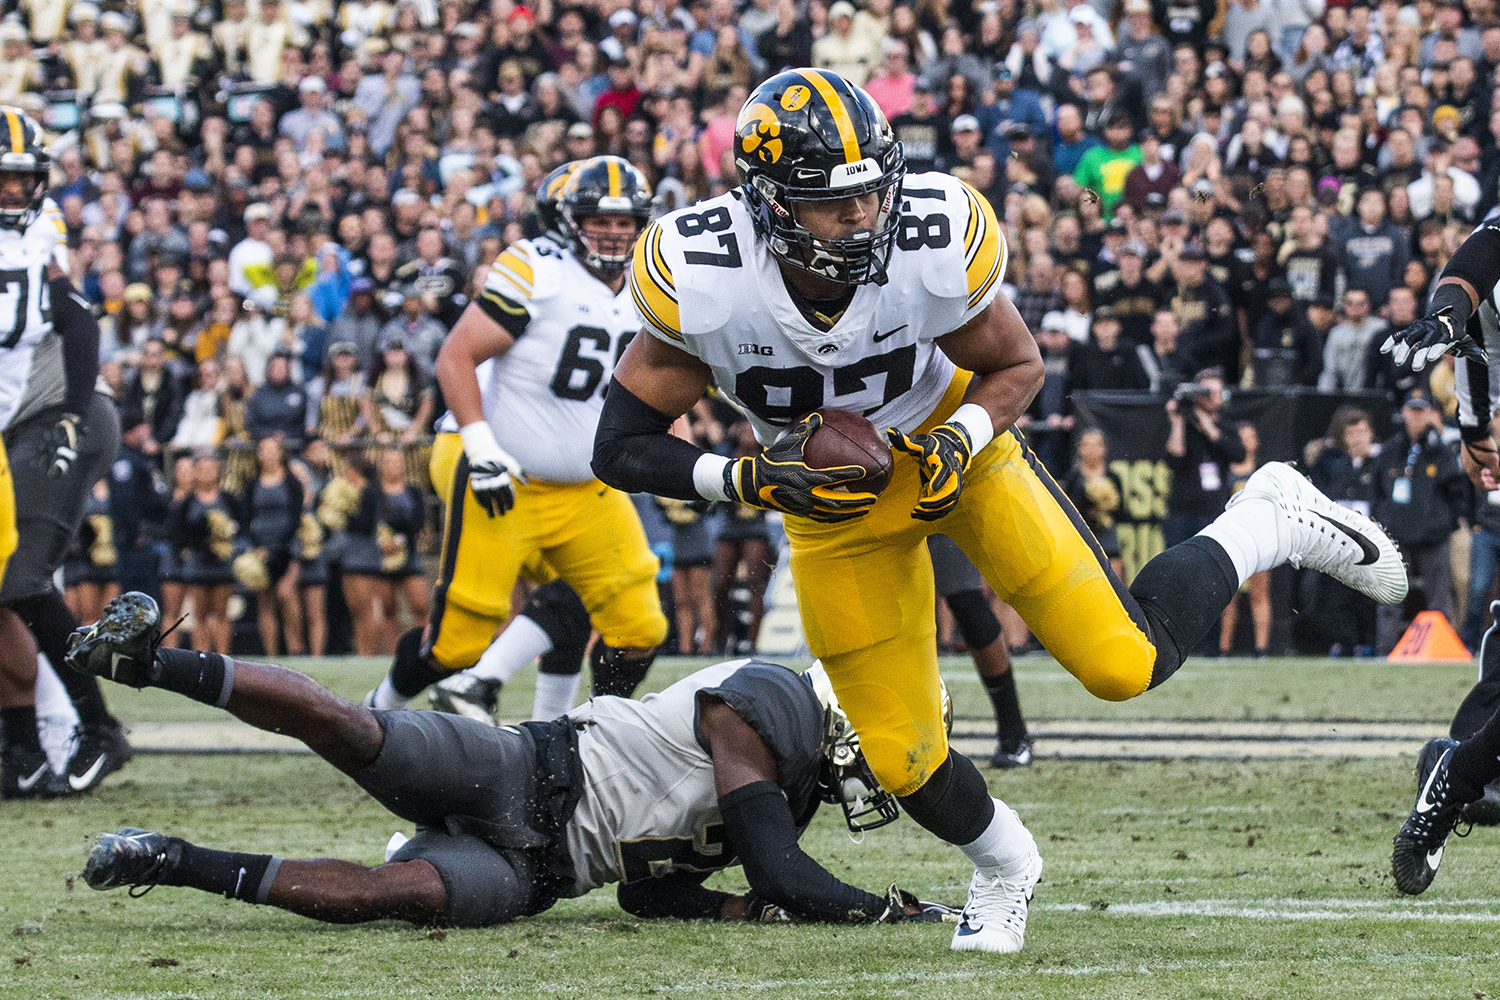 Iowa tight end Noah Fant breaks free from an attempted tackle by Purdue cornerback Kenneth Major during the Iowa/Purdue game at Ross-Ade Stadium in West Lafayette, Ind. on Saturday, November 3, 2018. The Boilermakers defeated the Hawkeyes 38-36.